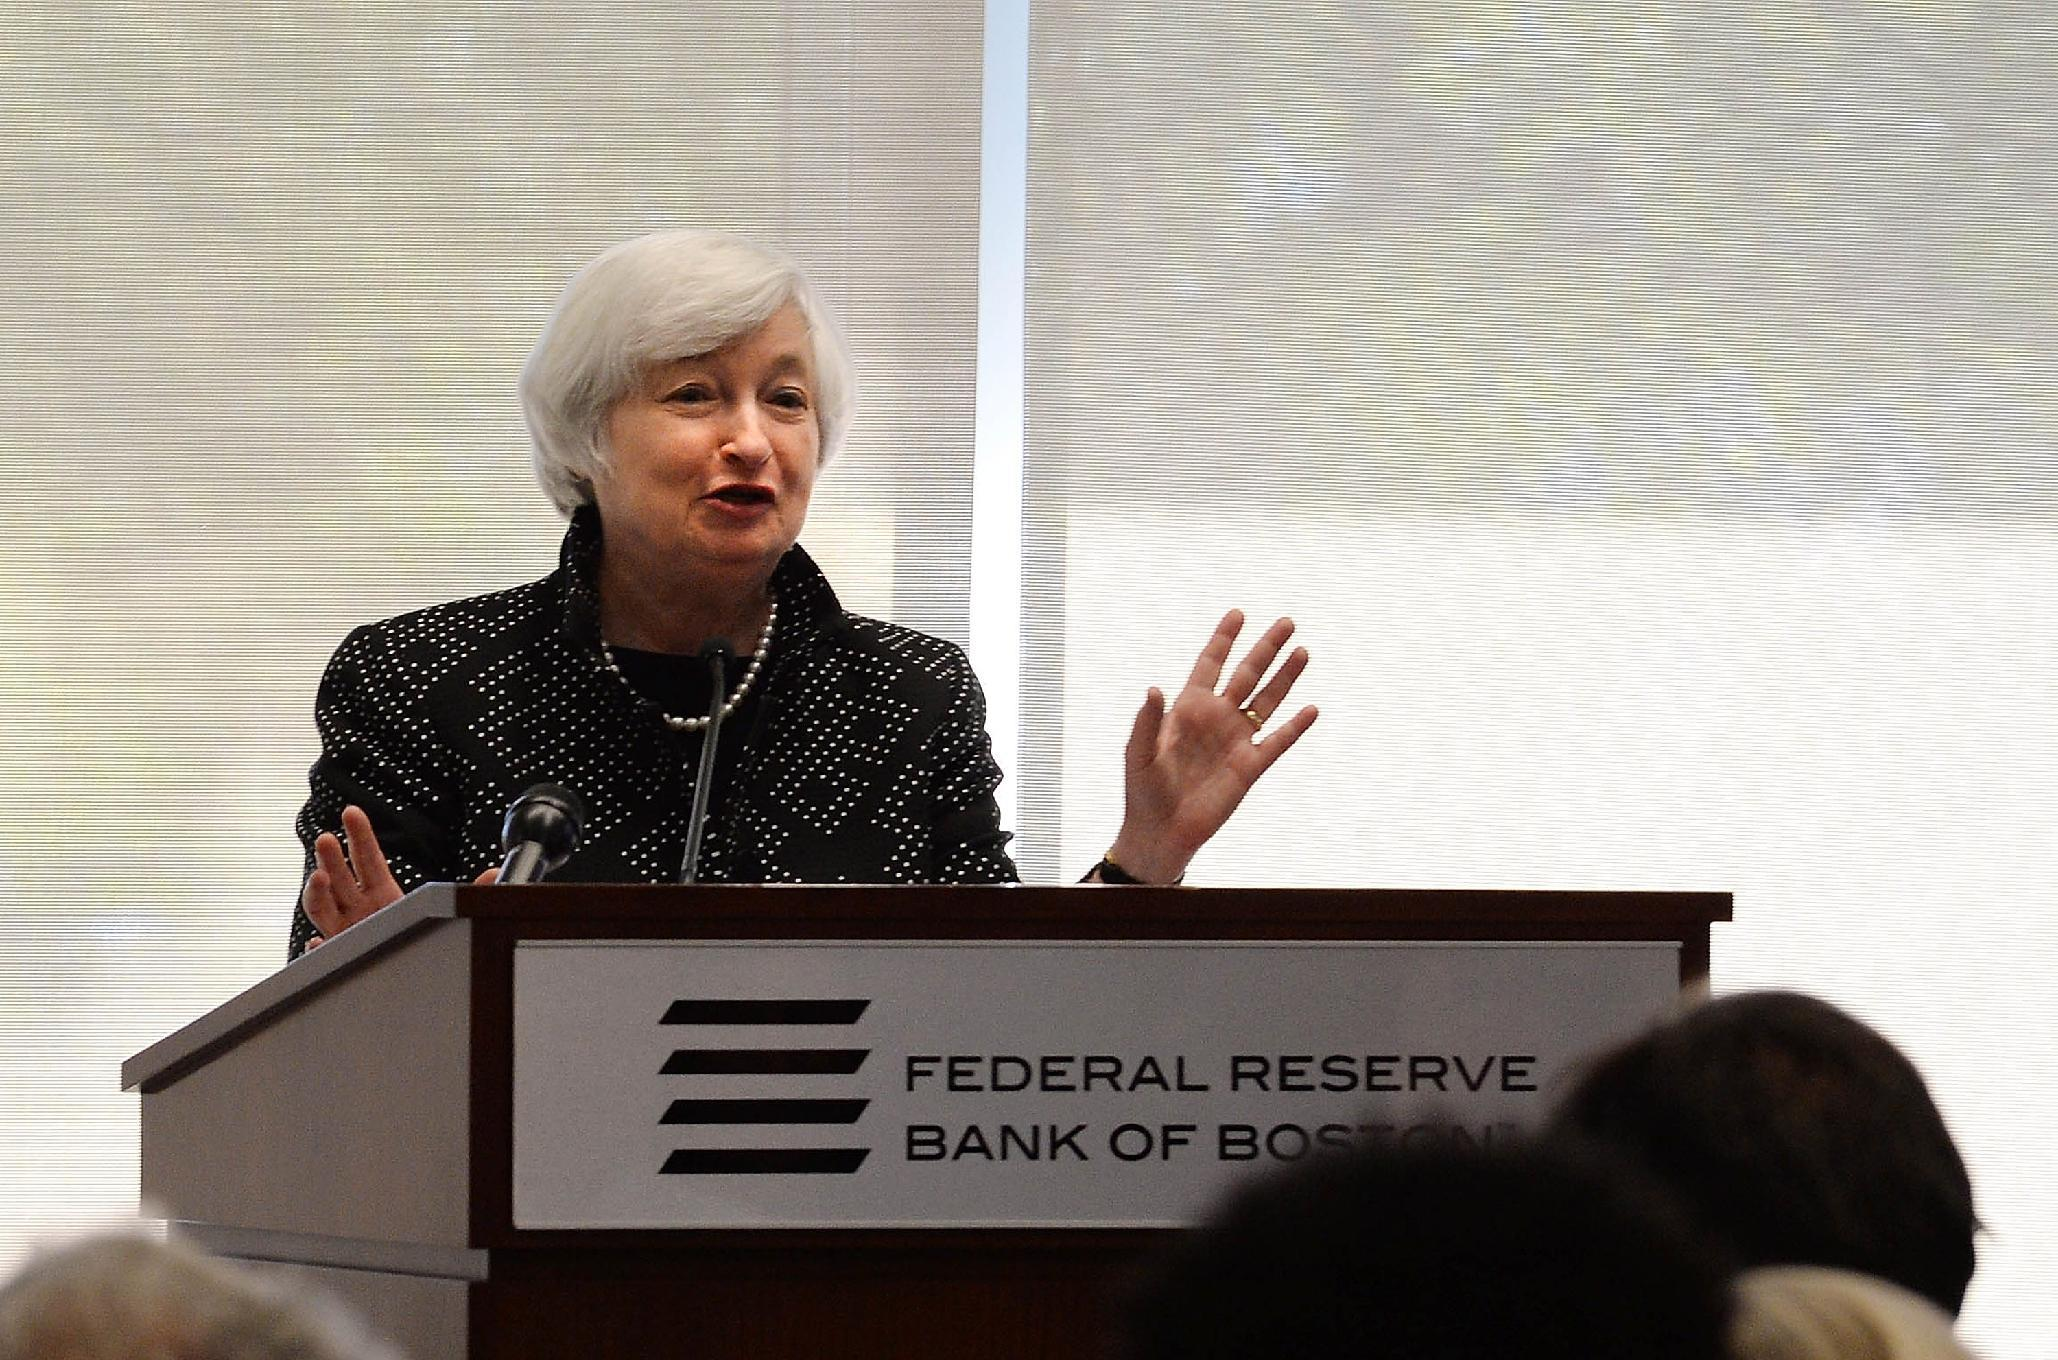 Federal Reserve Chair JanetYellen speaks at the Federal Reserve Bank of Boston on October 17, 2014 in Boston, Massachusetts (AFP Photo/Darren Mccollester)